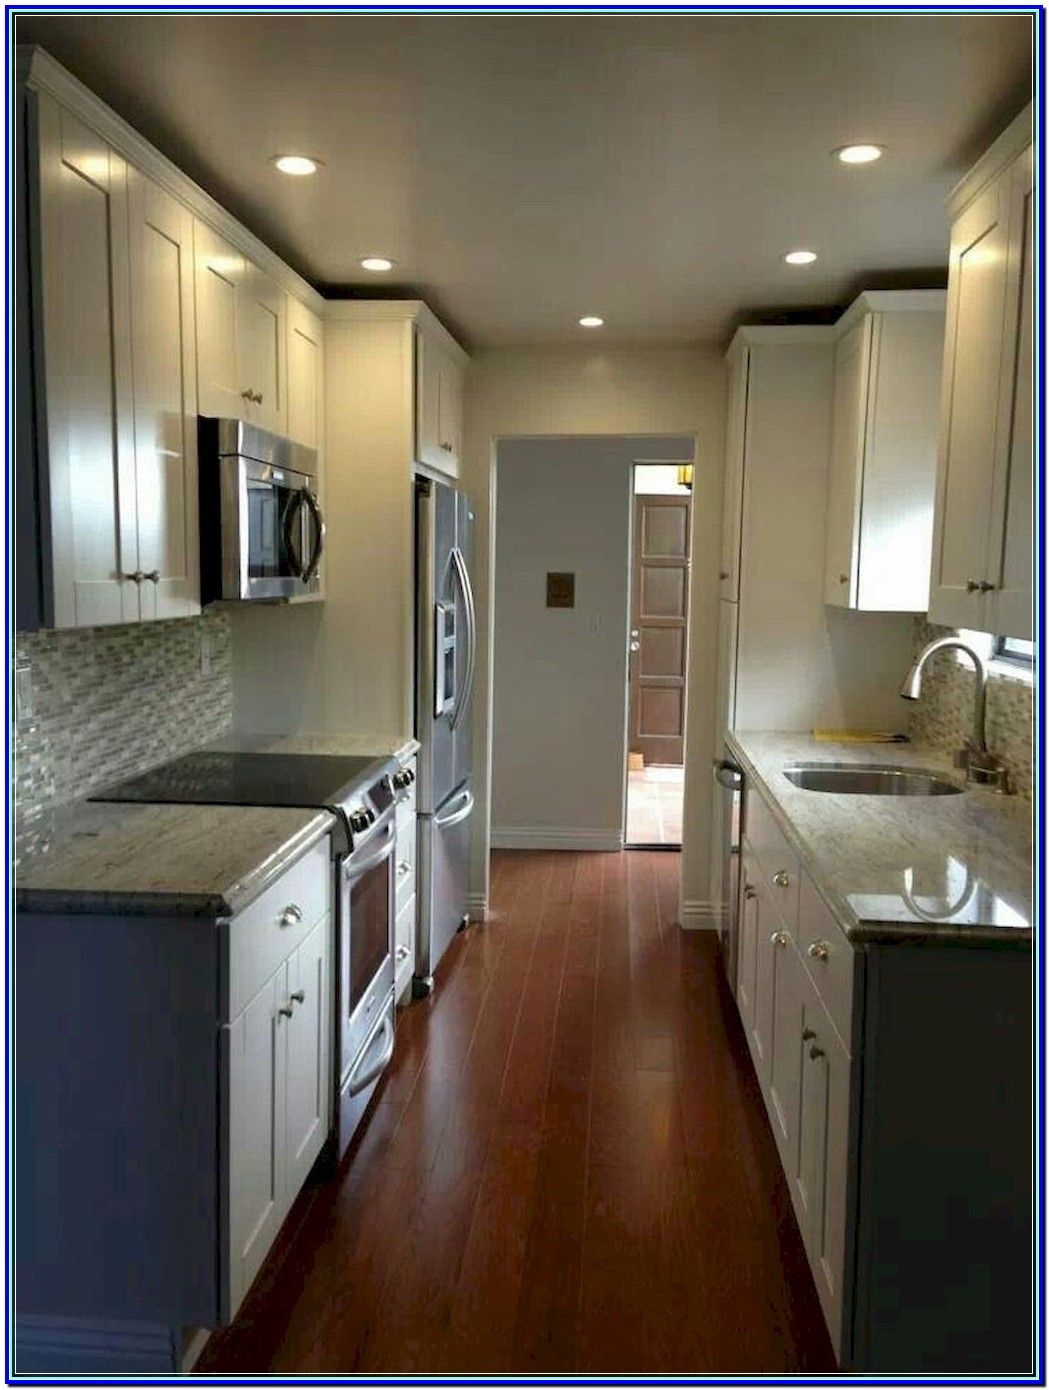 kitchen remodel add the most equity small galley kitchen designs galley kitchen design on kitchen remodel galley style id=61313